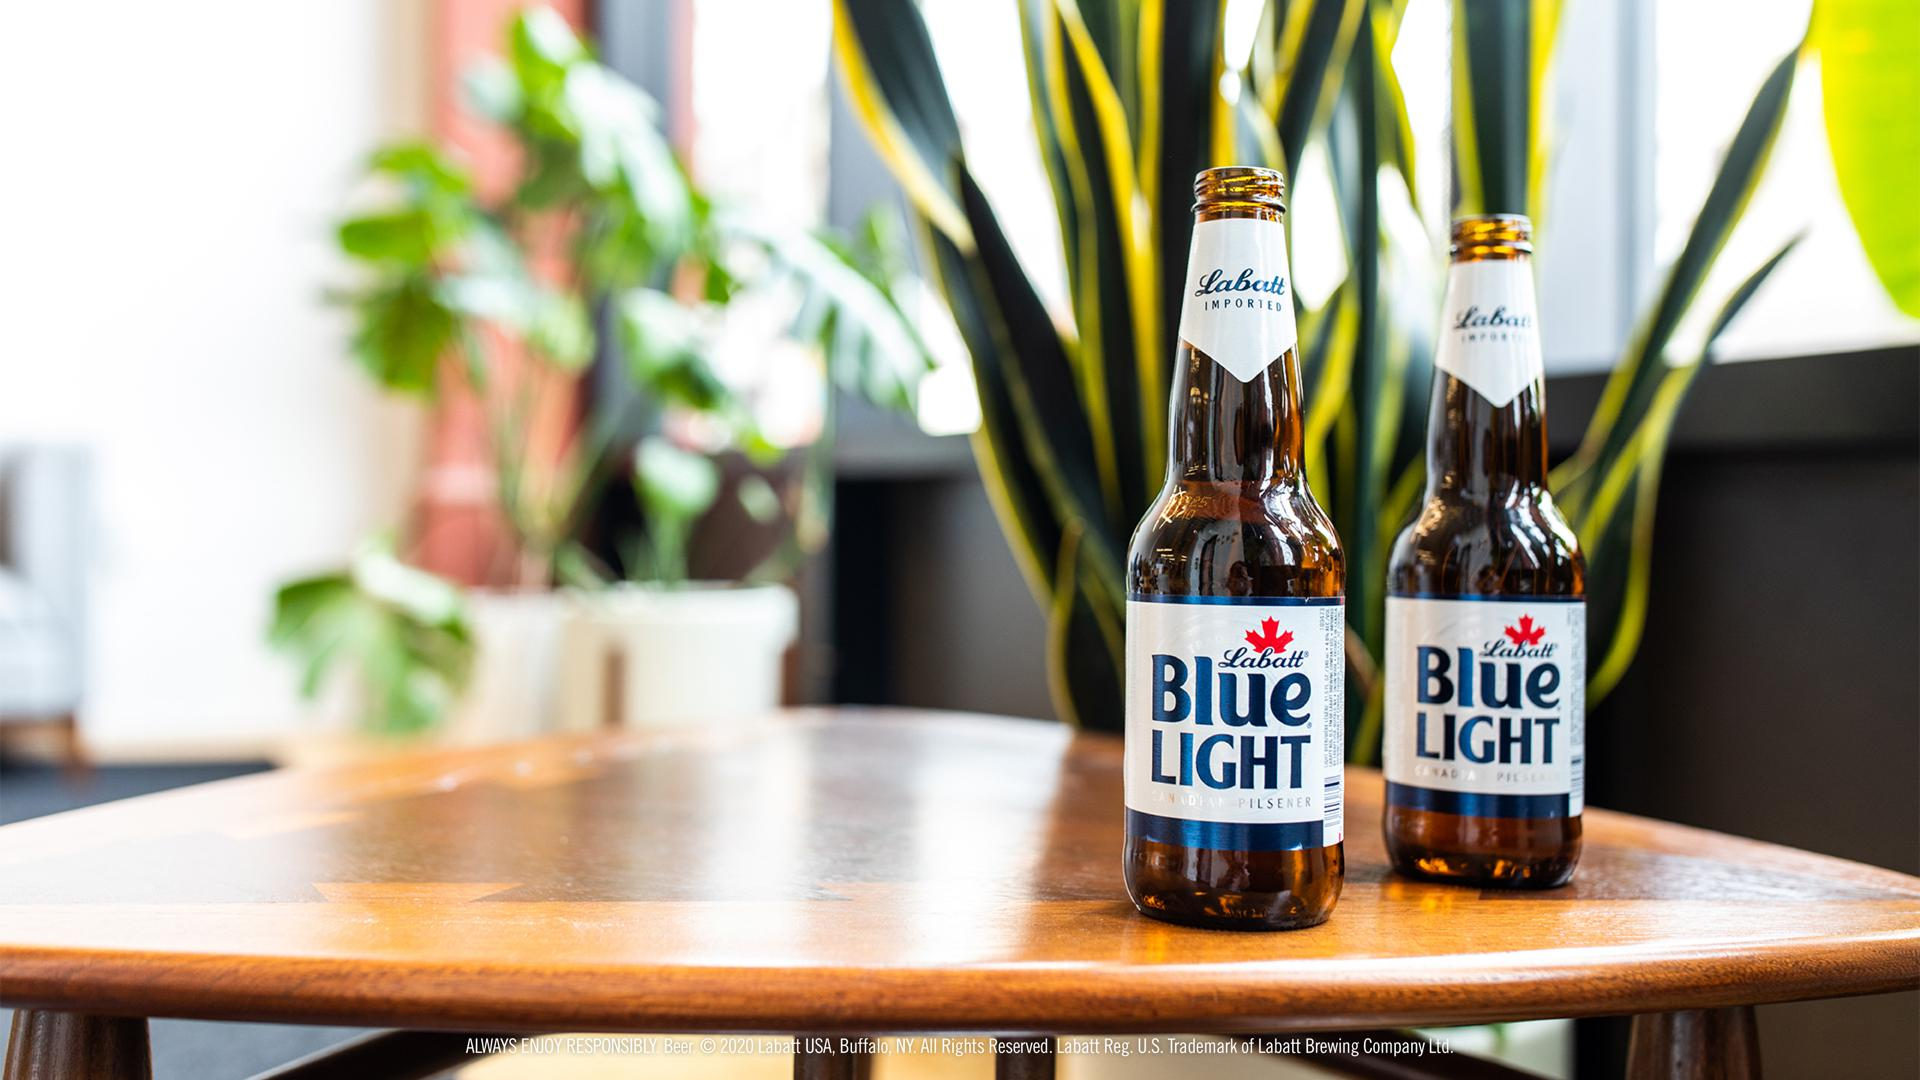 Blue Light Bottles on a Small Table with Plants in the Background